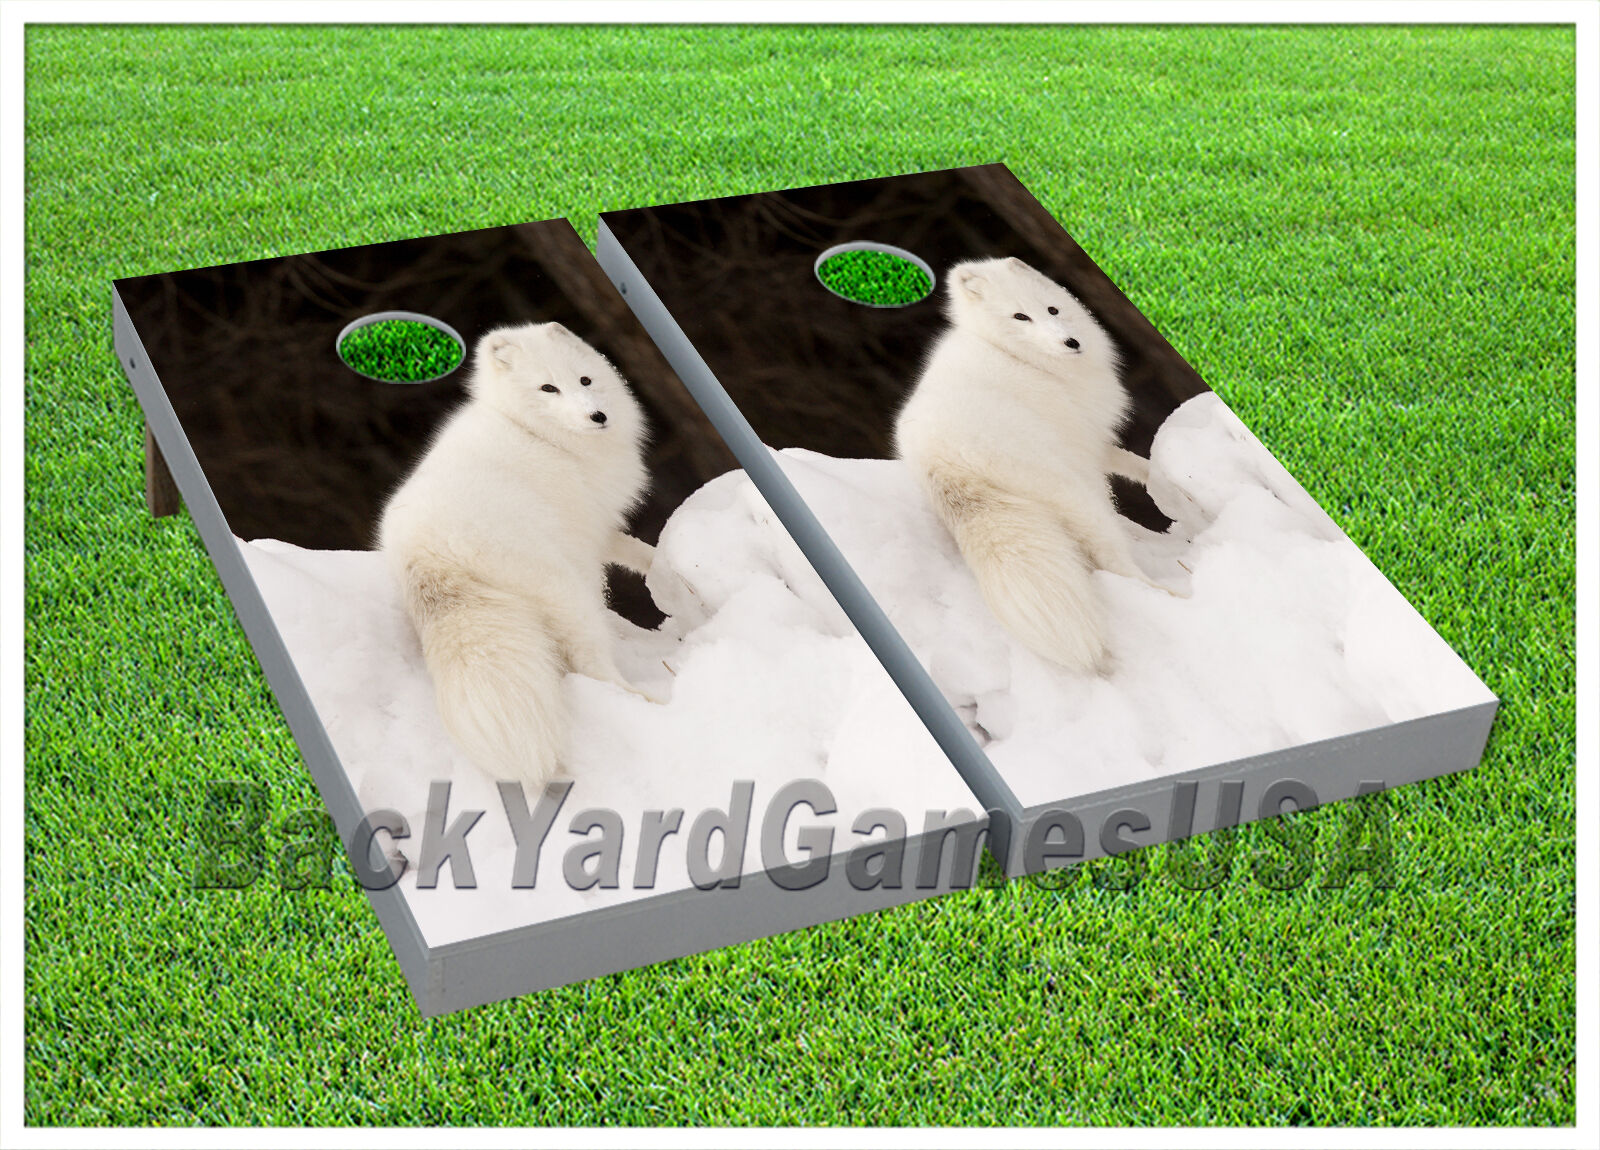 CORNHOLE BEANBAG TOSS GAME w Bags Game Boards White Fox  Snow Animal Set 997  brand outlet